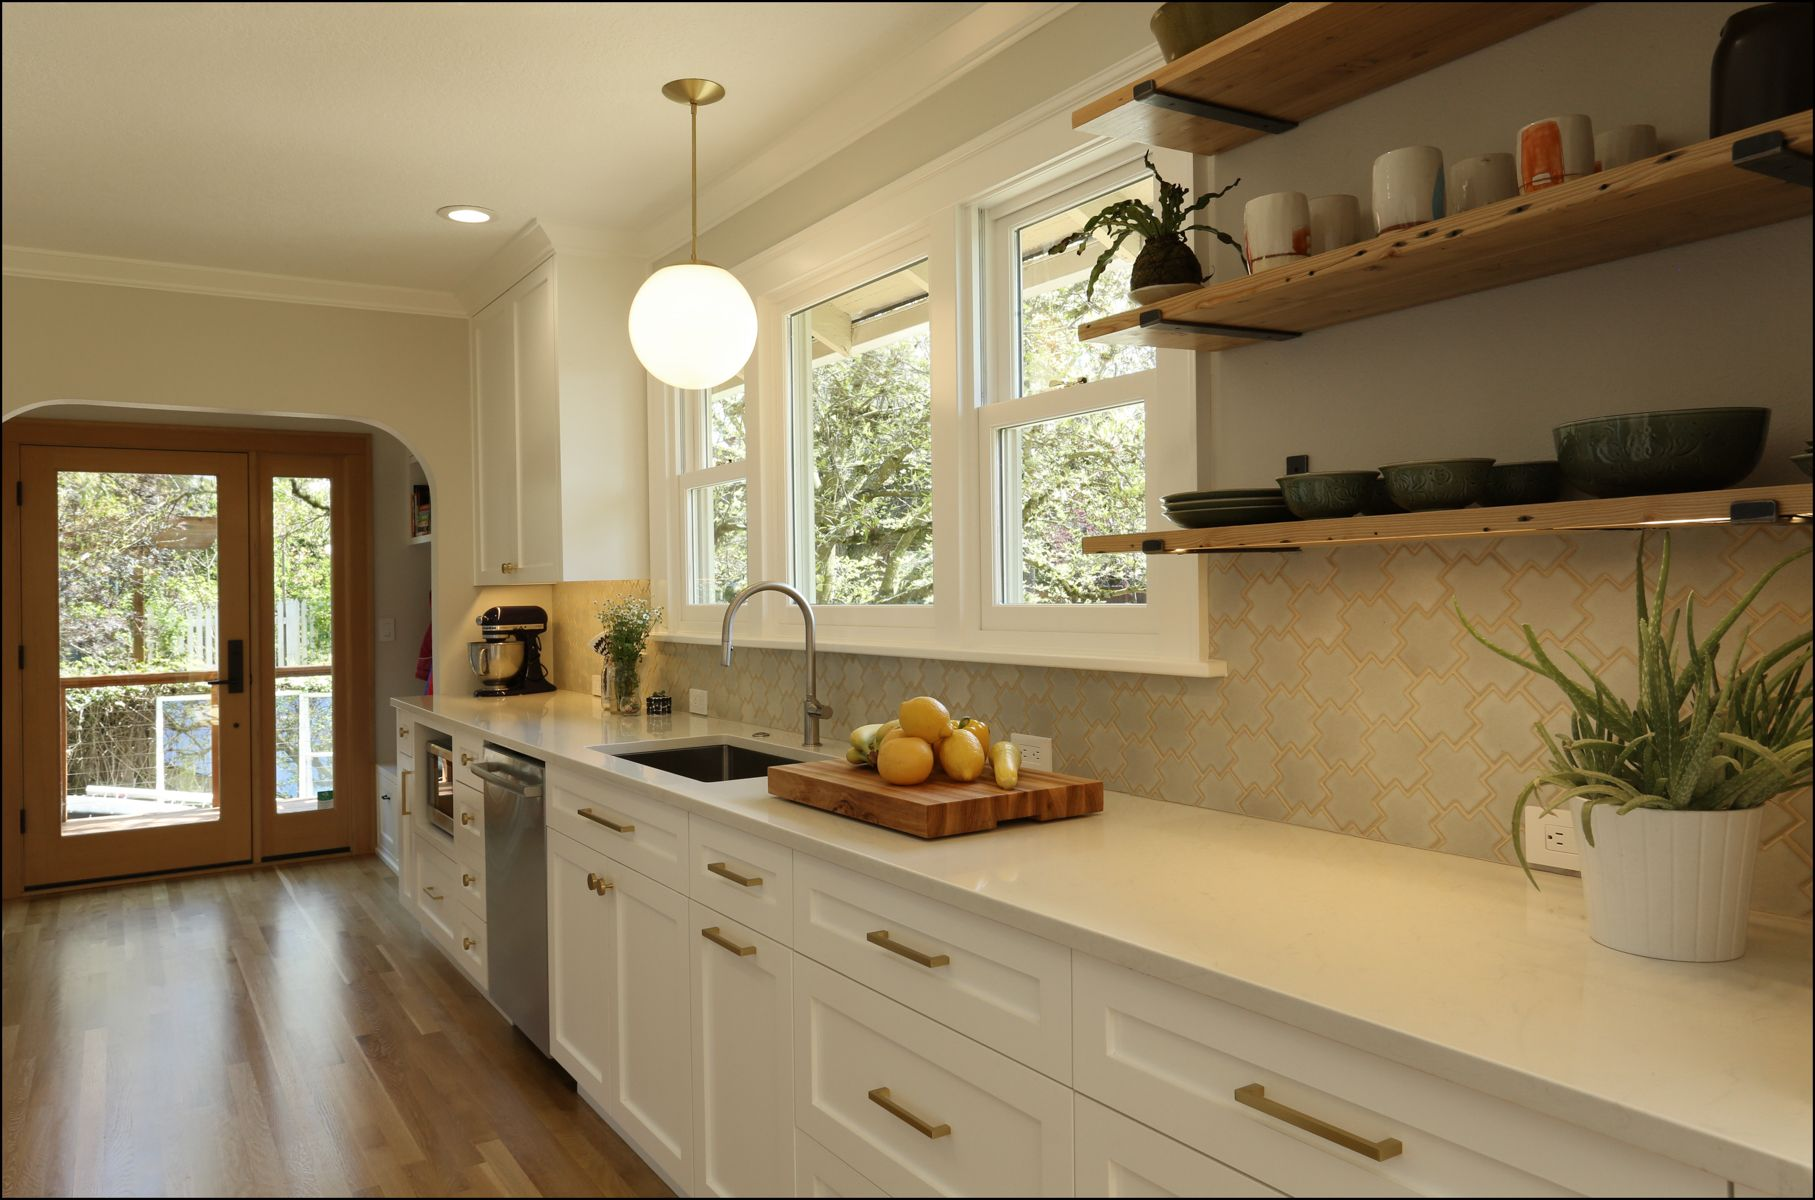 Complete Renovation Of An Existing Galley Kitchen The Design Uses Contemporary Touches In A Traditional Setting To Kitchen Design Kitchen Residential Remodel